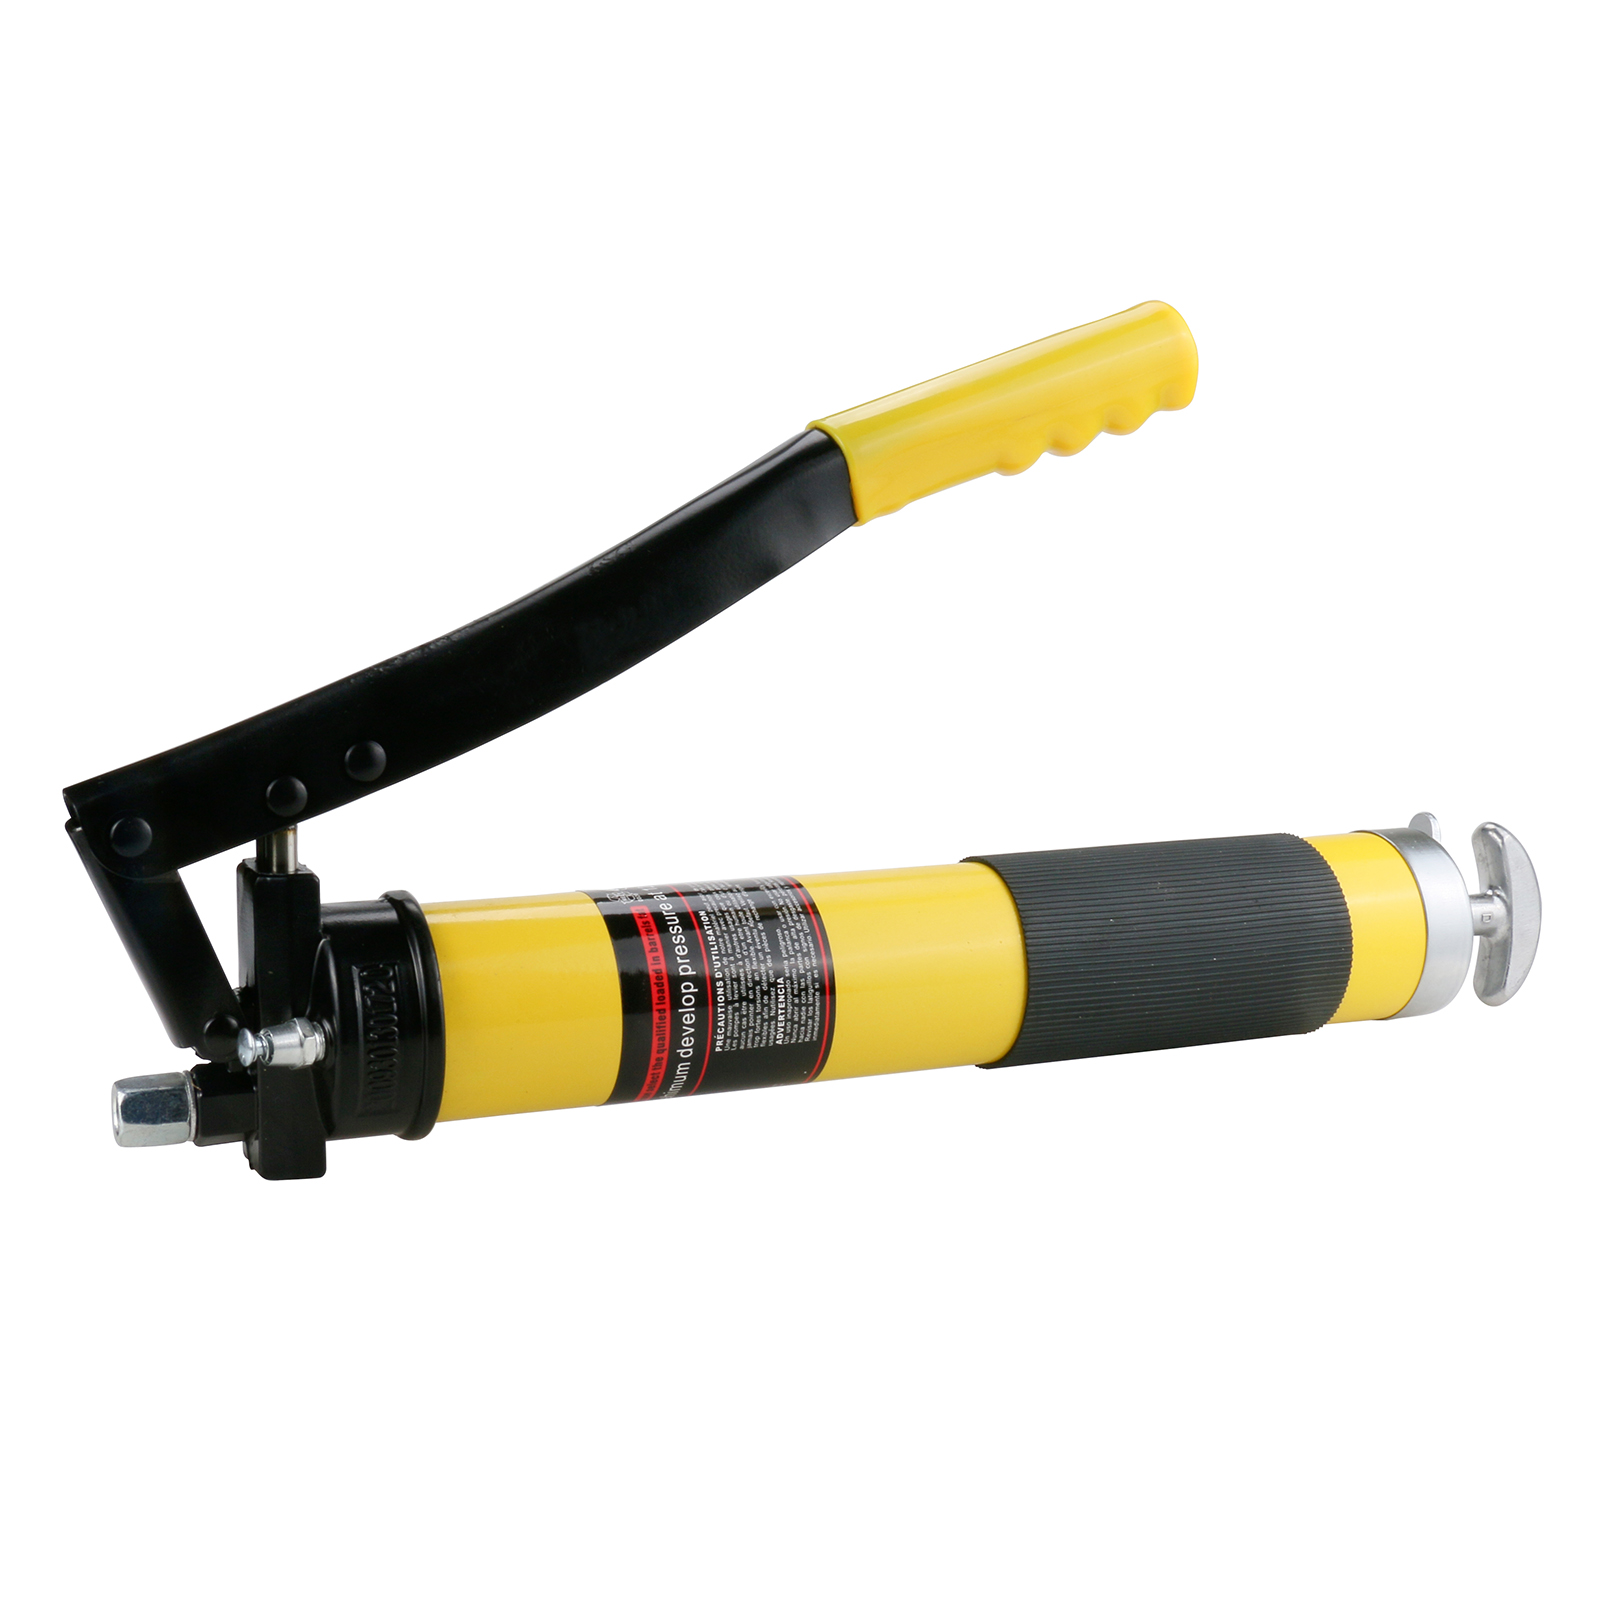 Hand-operated Grease Gun Heavy Duty Double Pump Pressure for Maximum 12000 PSI 12 PU Flex hose for Auto Repair ToolsHand-operated Grease Gun Heavy Duty Double Pump Pressure for Maximum 12000 PSI 12 PU Flex hose for Auto Repair Tools